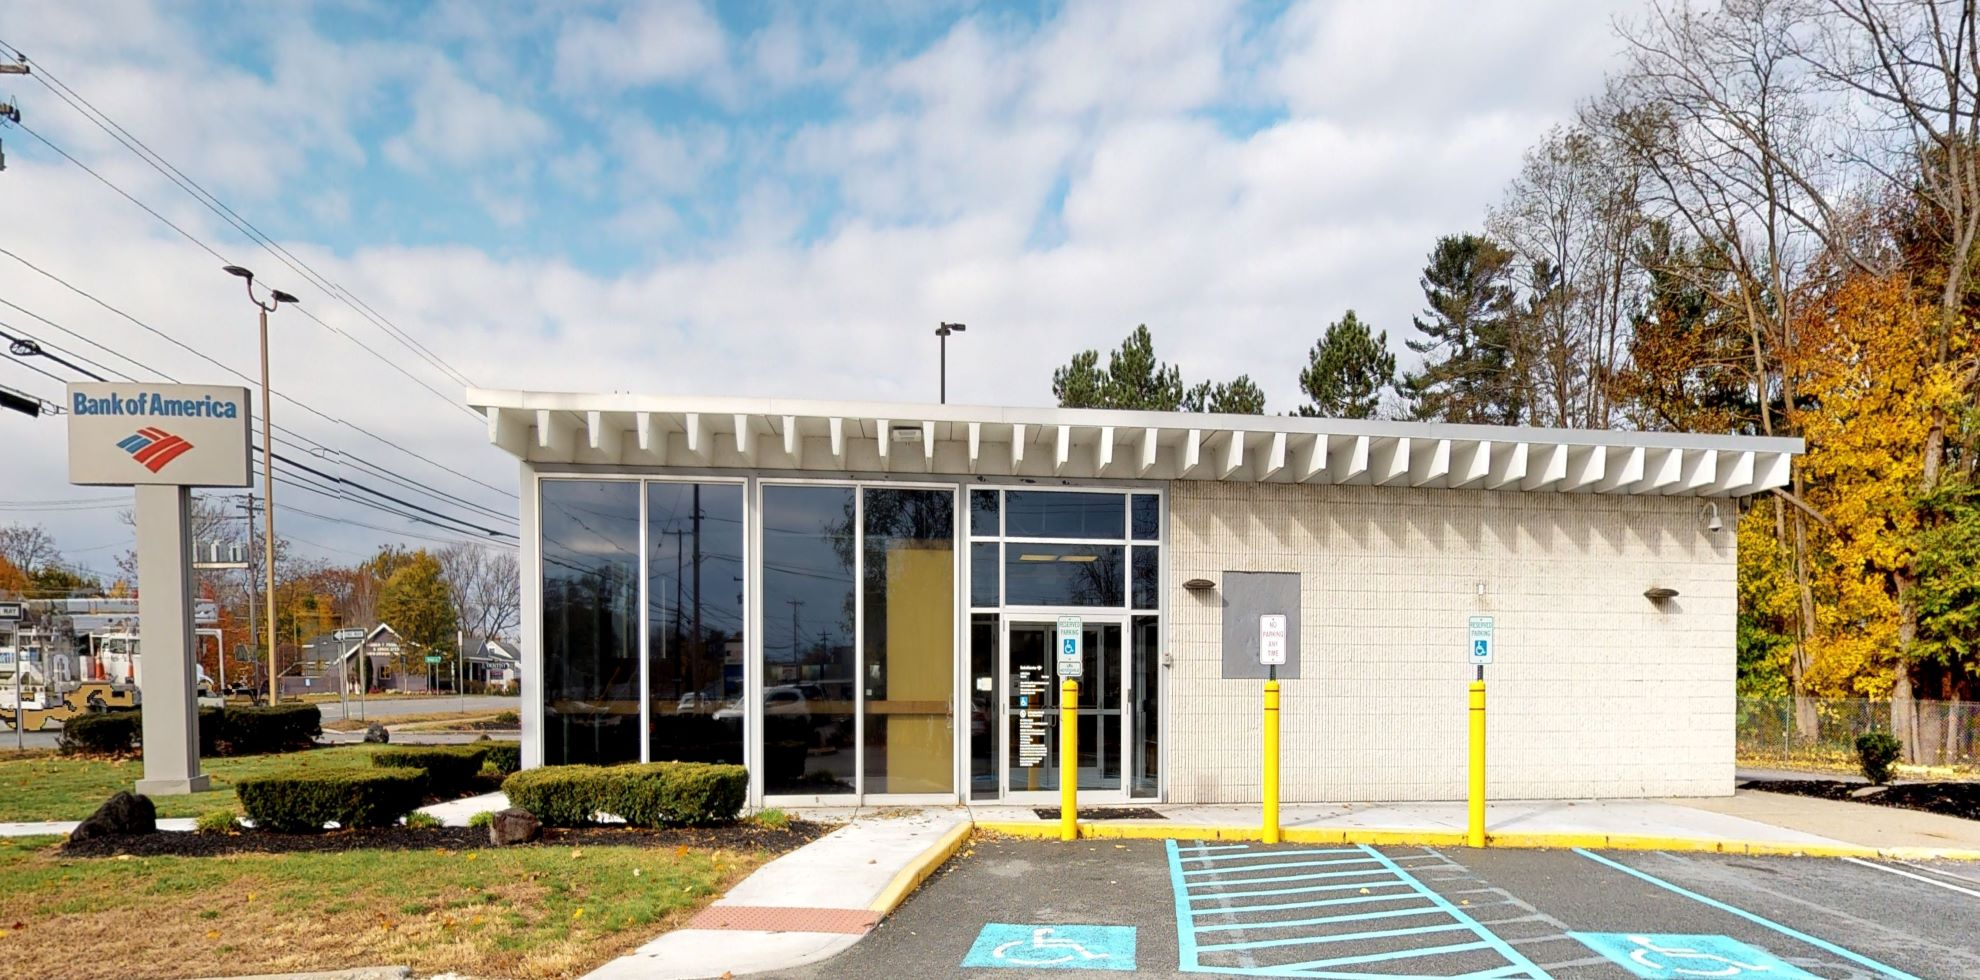 Bank of America financial center with drive-thru ATM | 1791 Western Ave, Albany, NY 12203